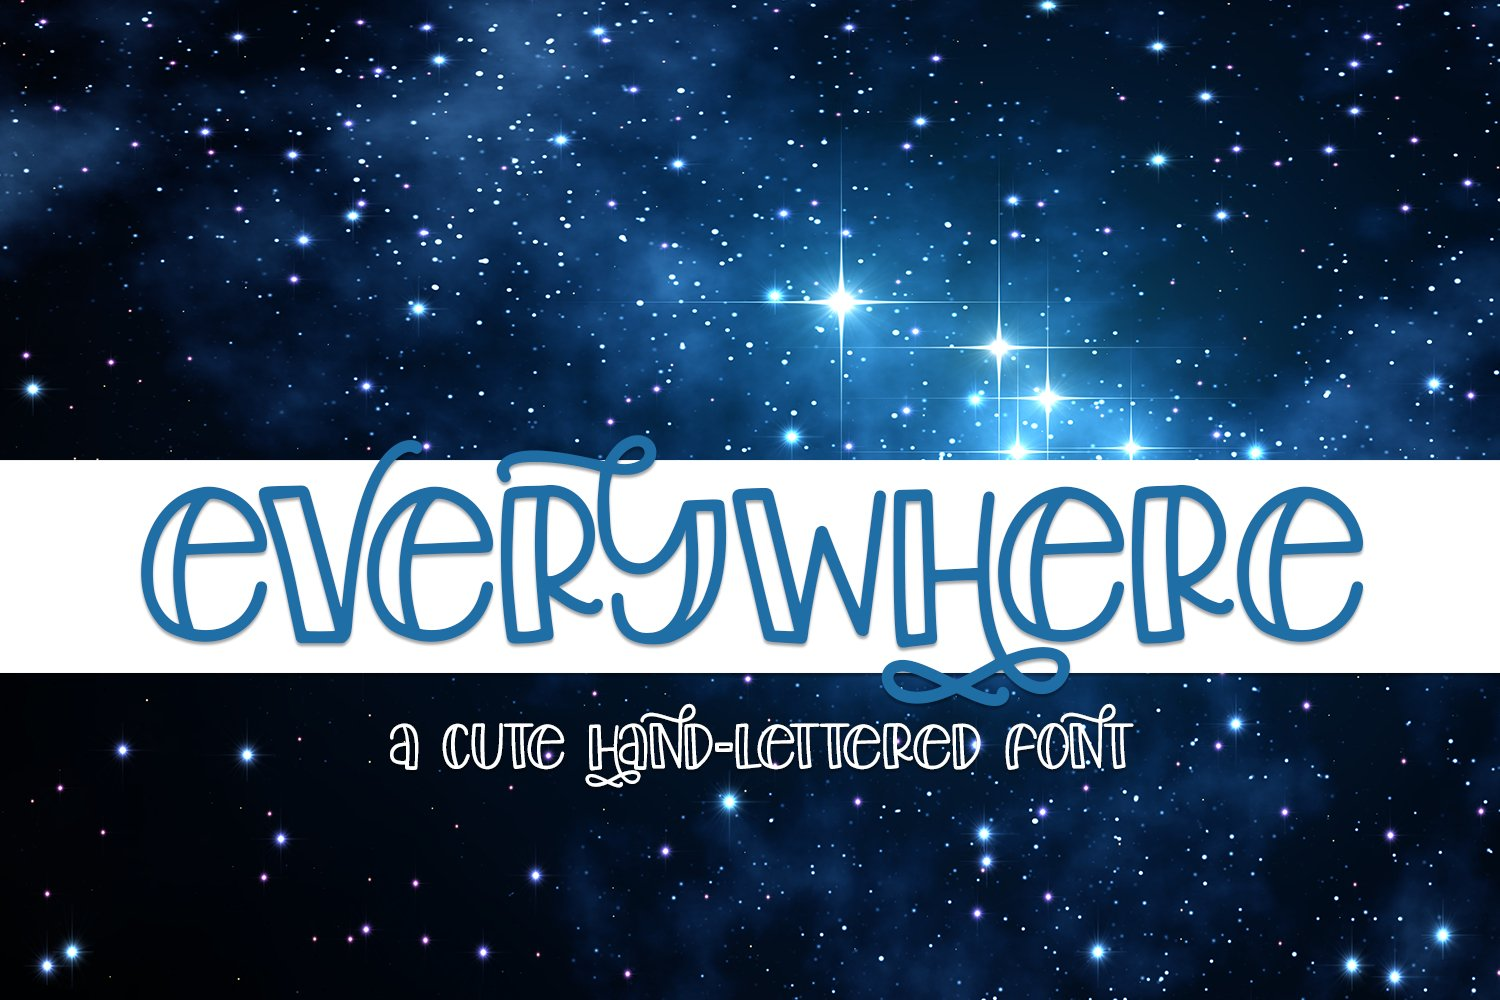 Everywhere - A Cute Hand-Lettered Font example image 1